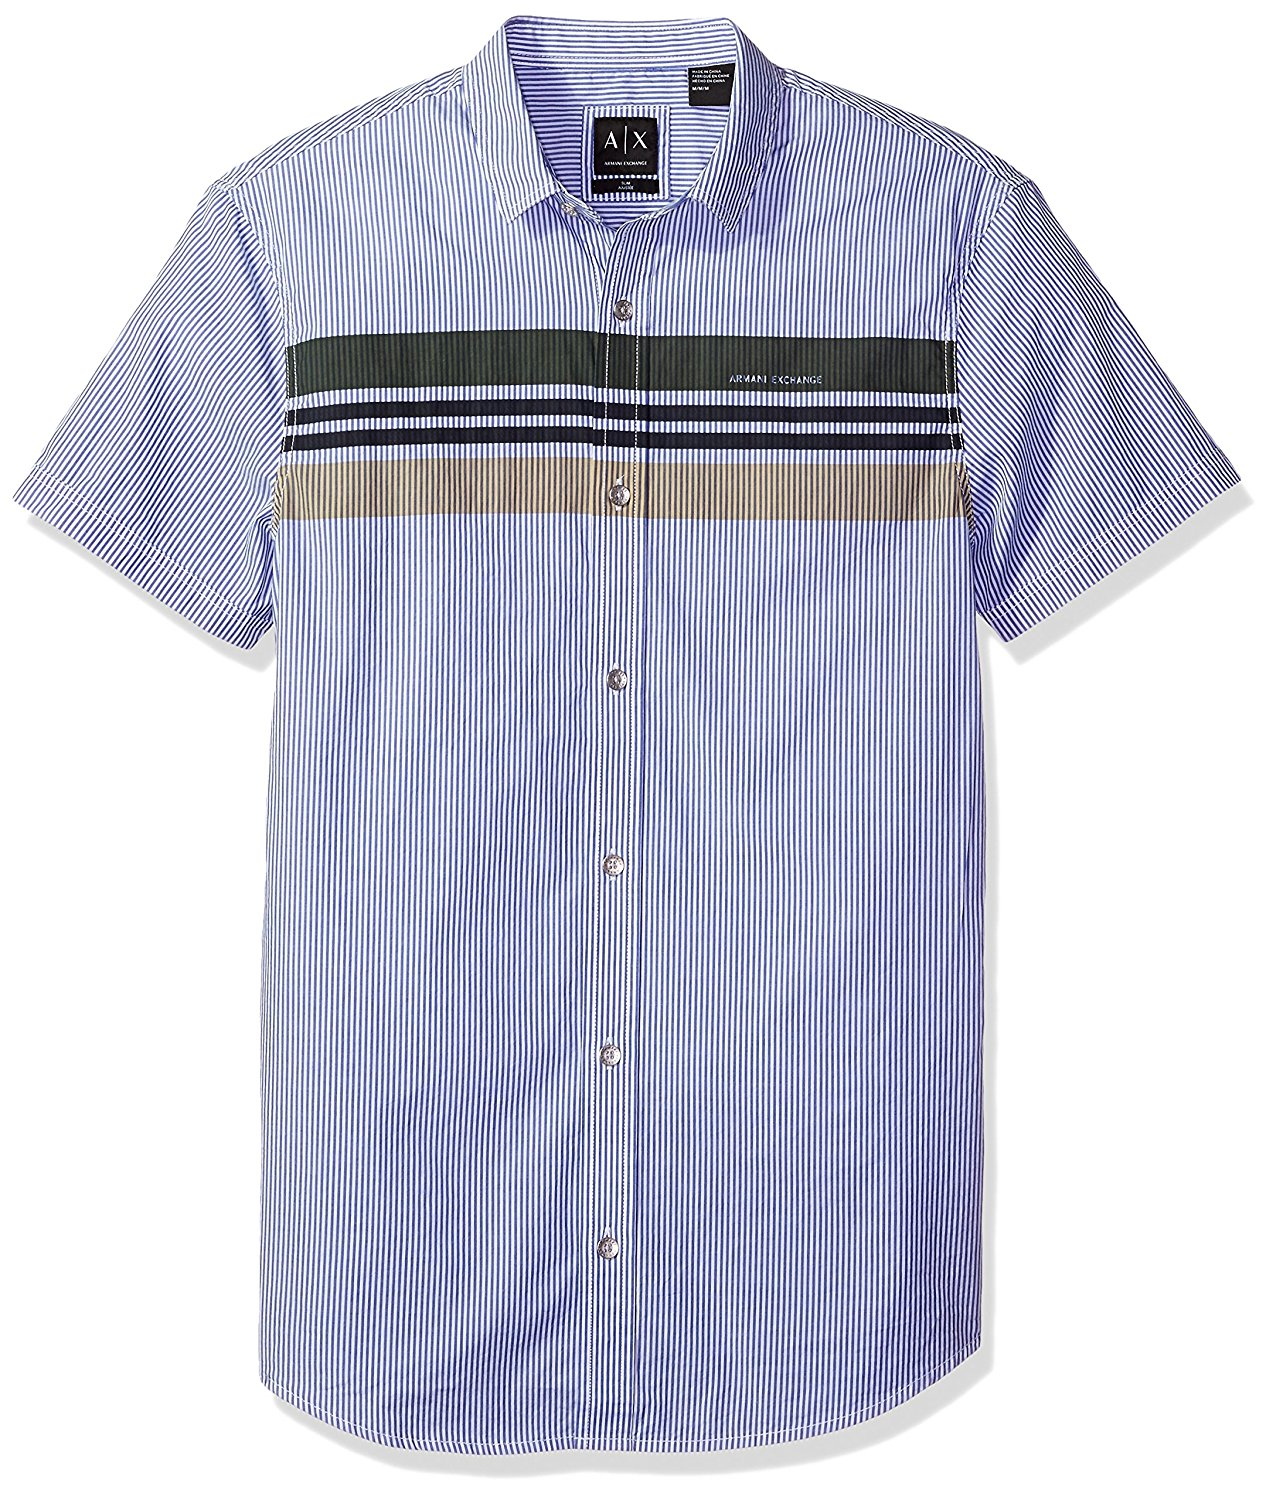 Amazon.com: A|X Armani Exchange Men's 3 Stripe Front Detail Short Sleeve Woven: Clothing